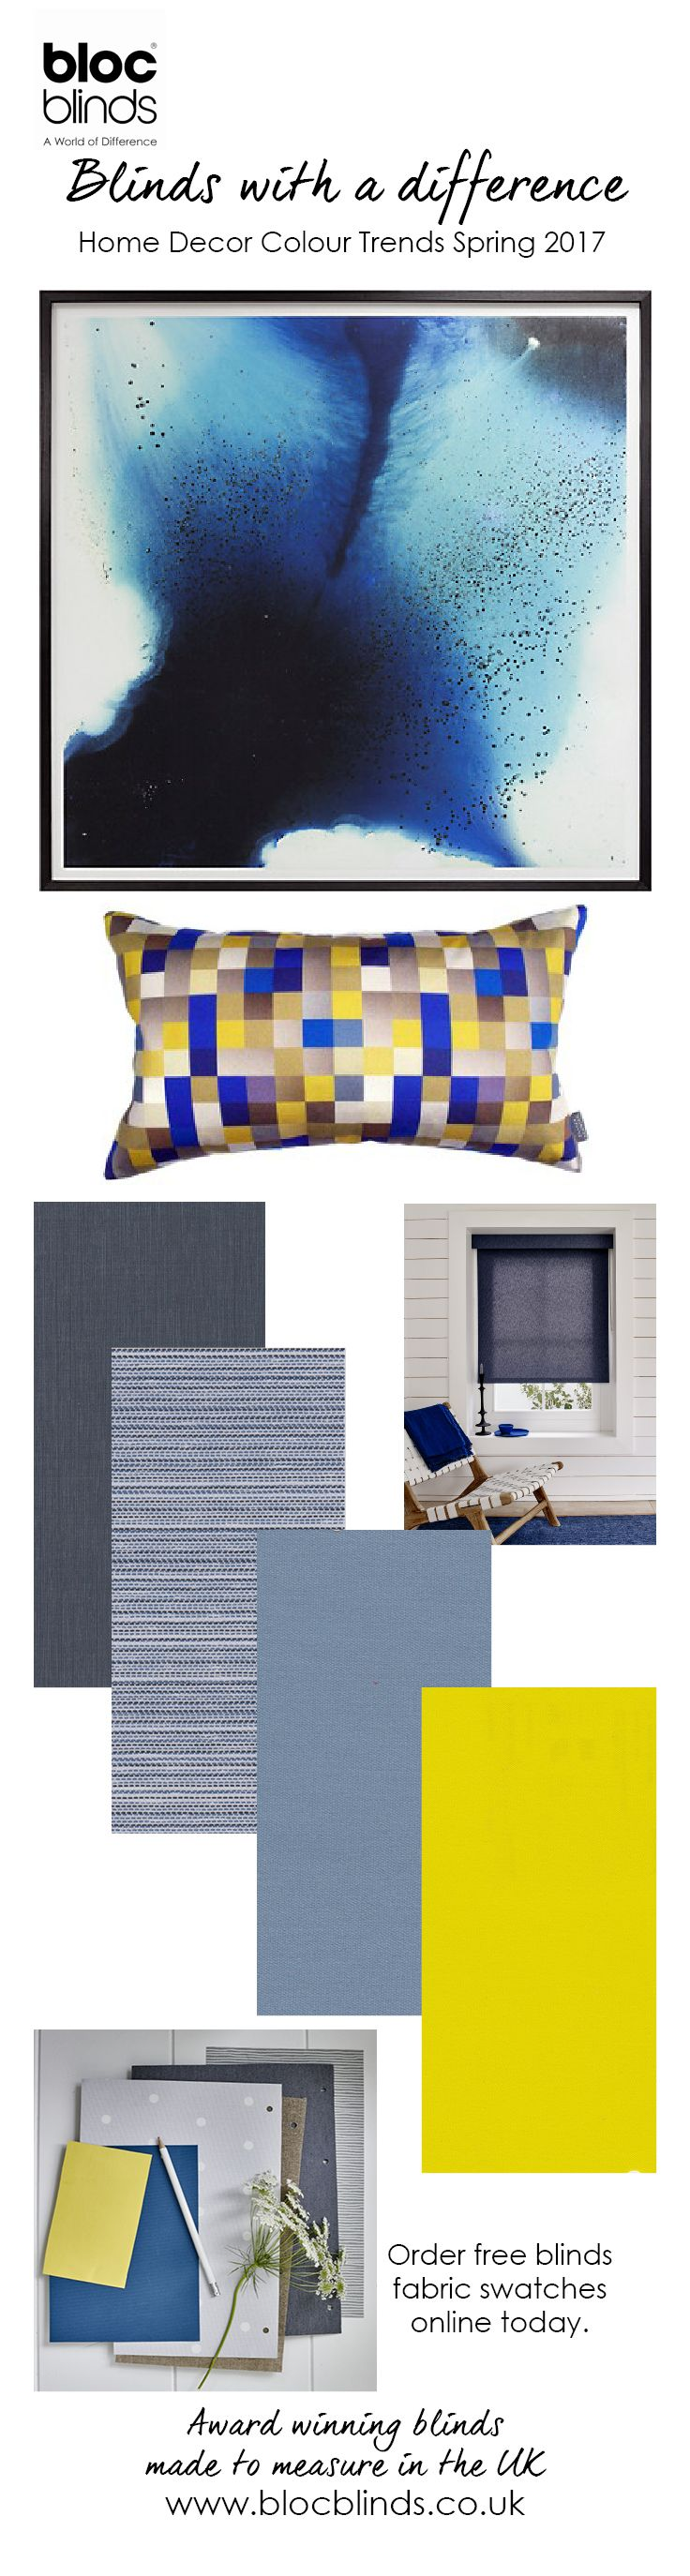 Achieve a fresh look in your home using blues and yellows this spring. Bloc Blinds help you to pull the look together with clever accessorising. Order free window blind swatches online.